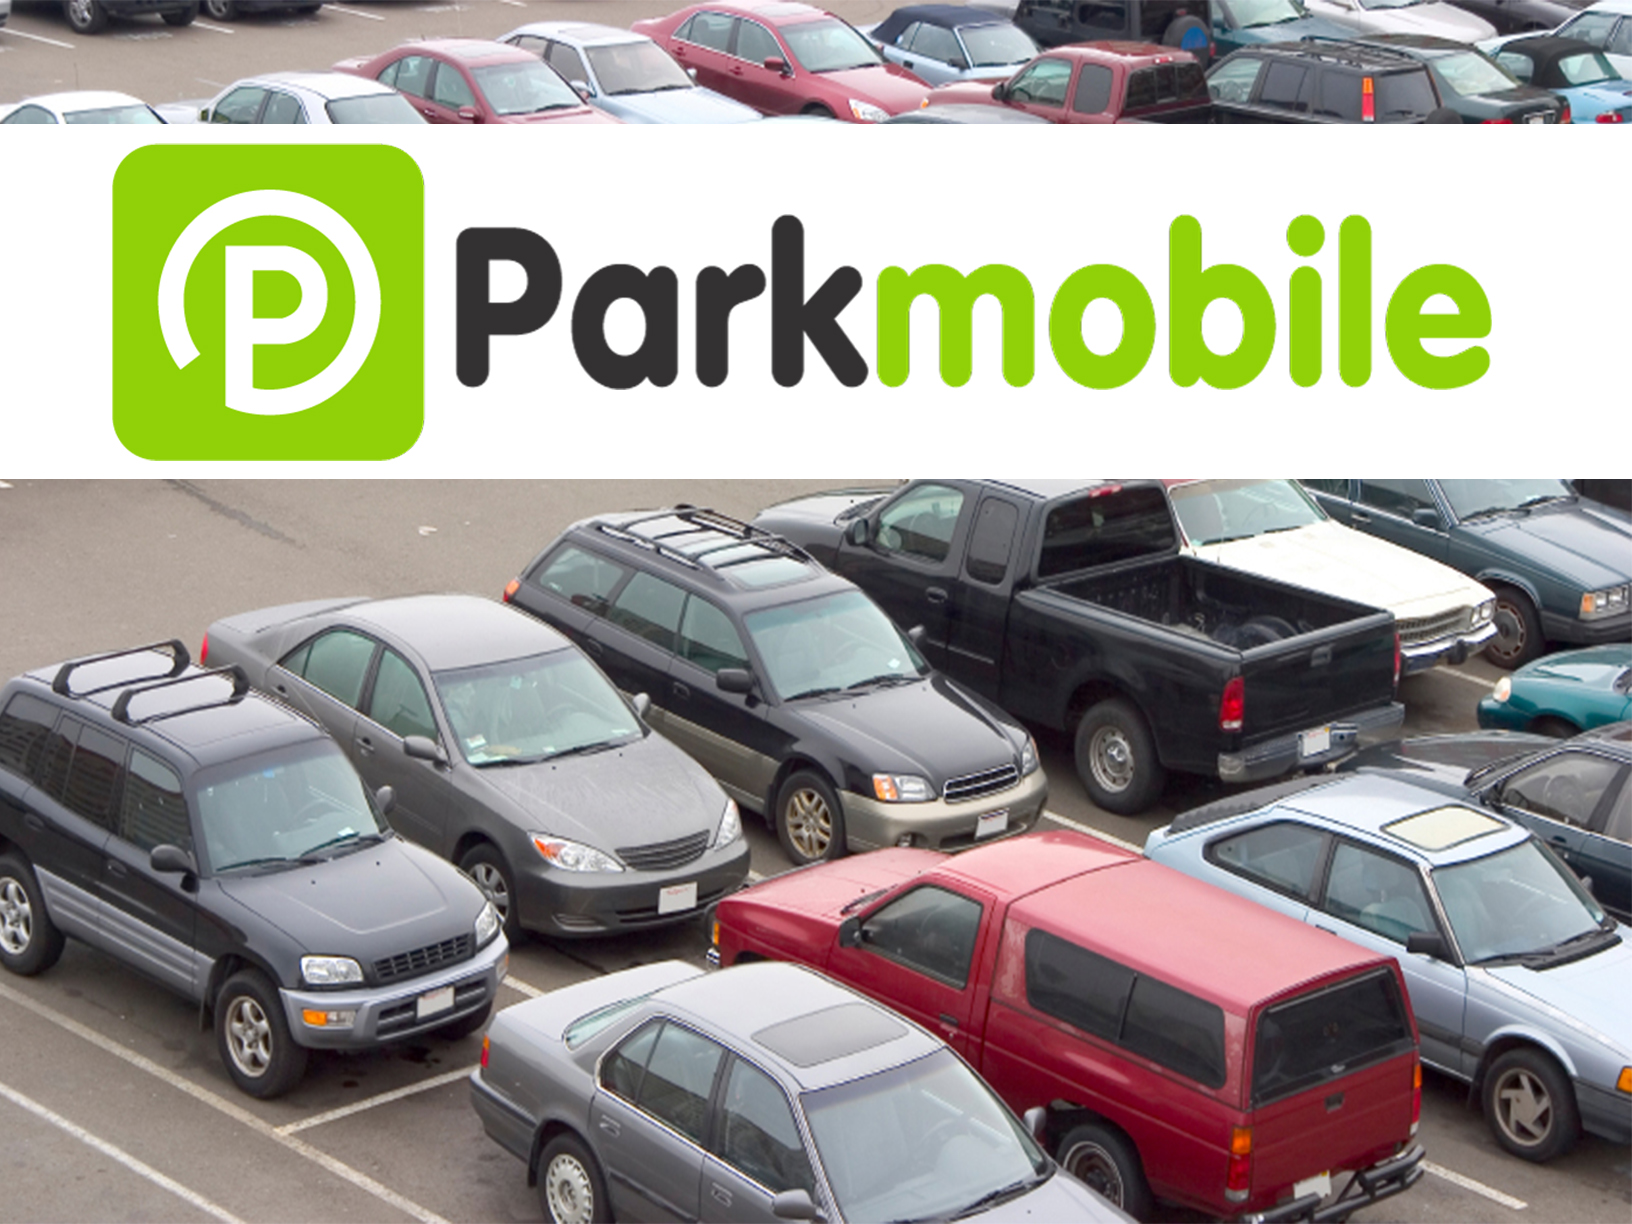 Click here for parkmobile information